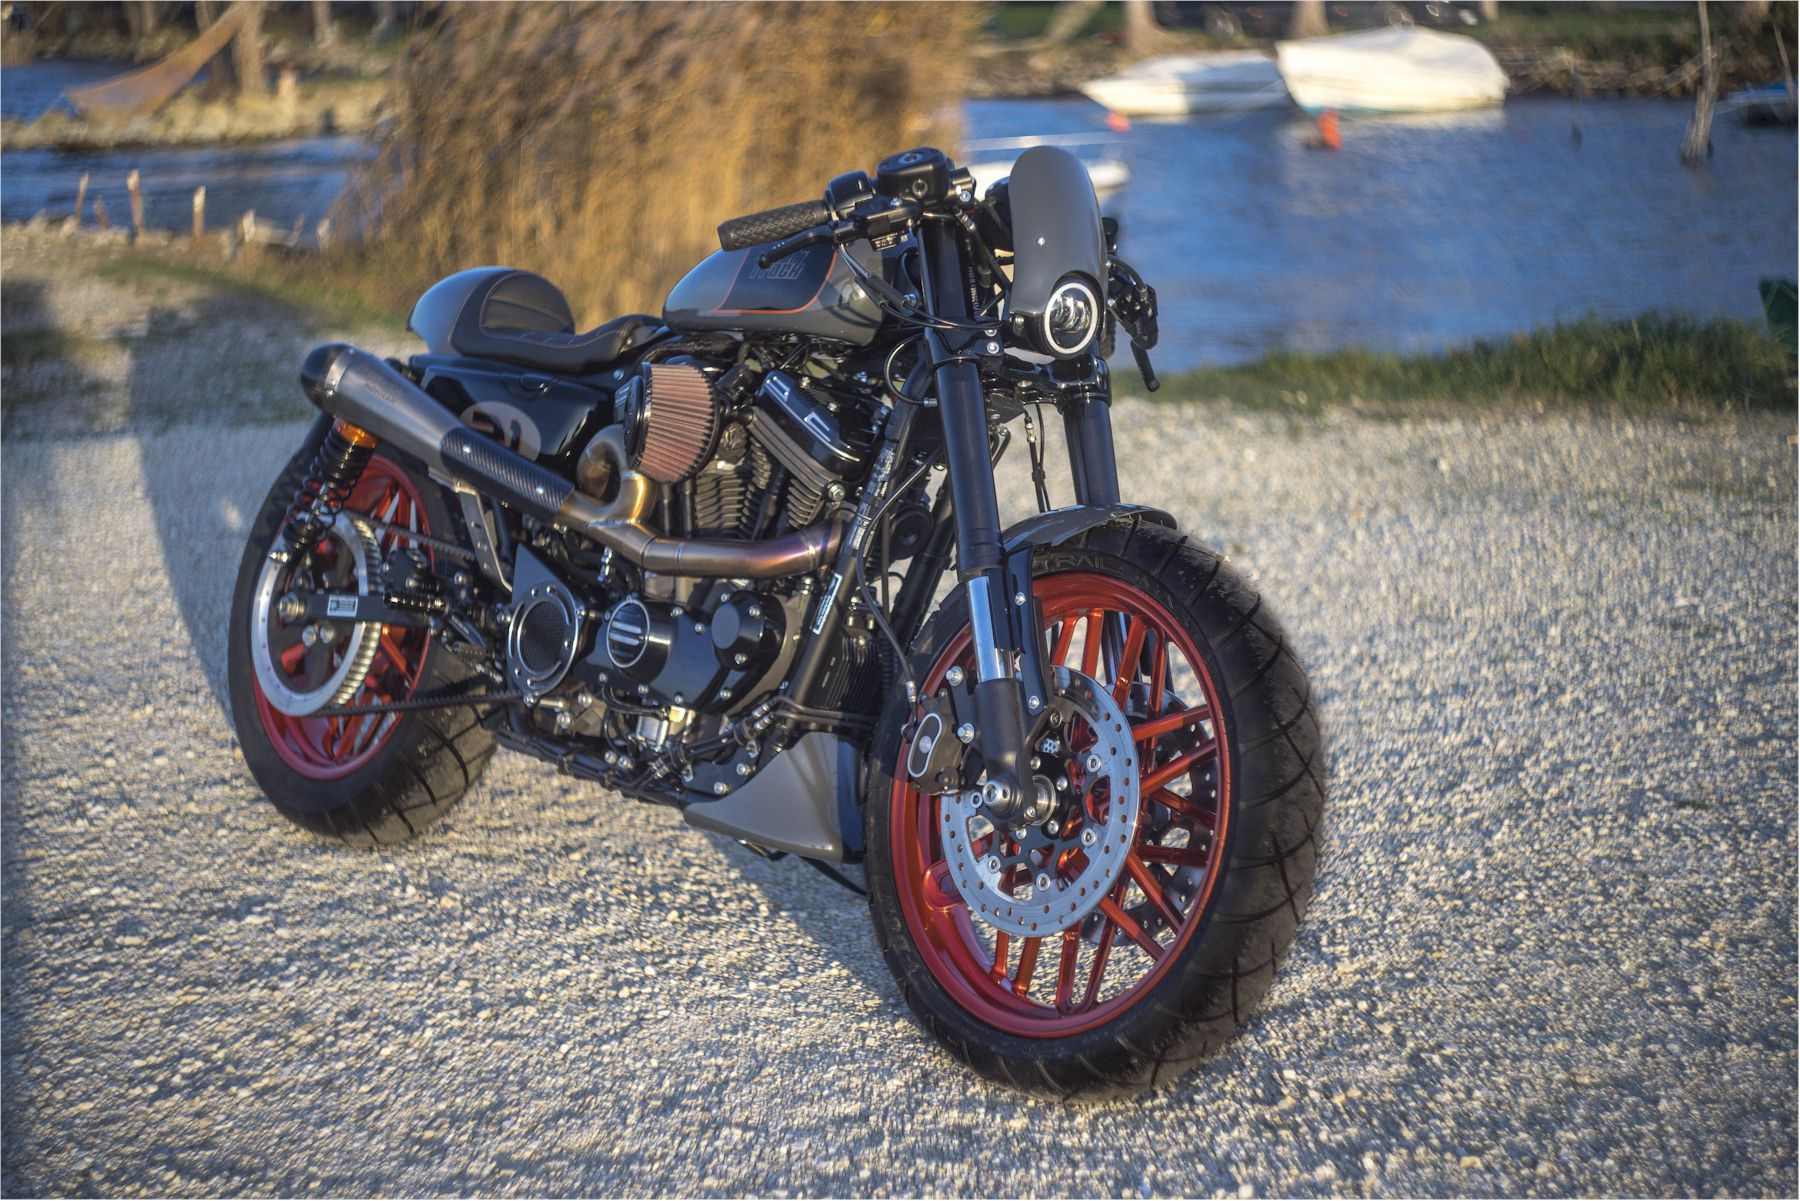 Special Harley Davidson® 883 with dedicated Mohican Exhaust Full system